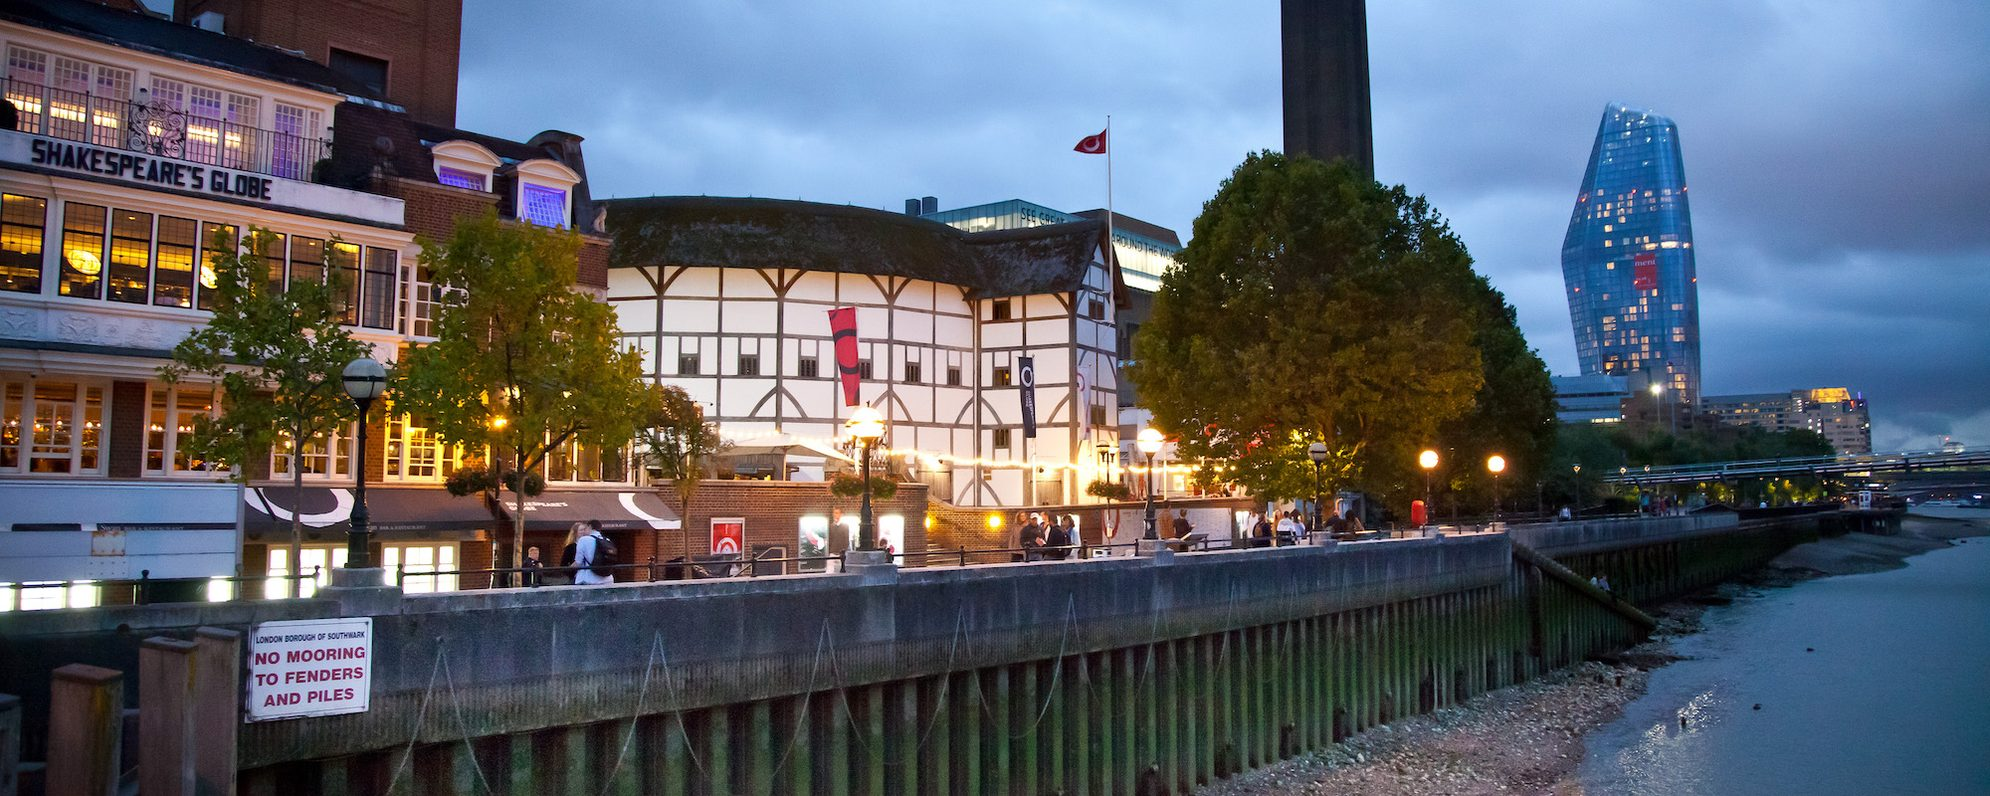 Shakespeare's Globe by the riverside at night time